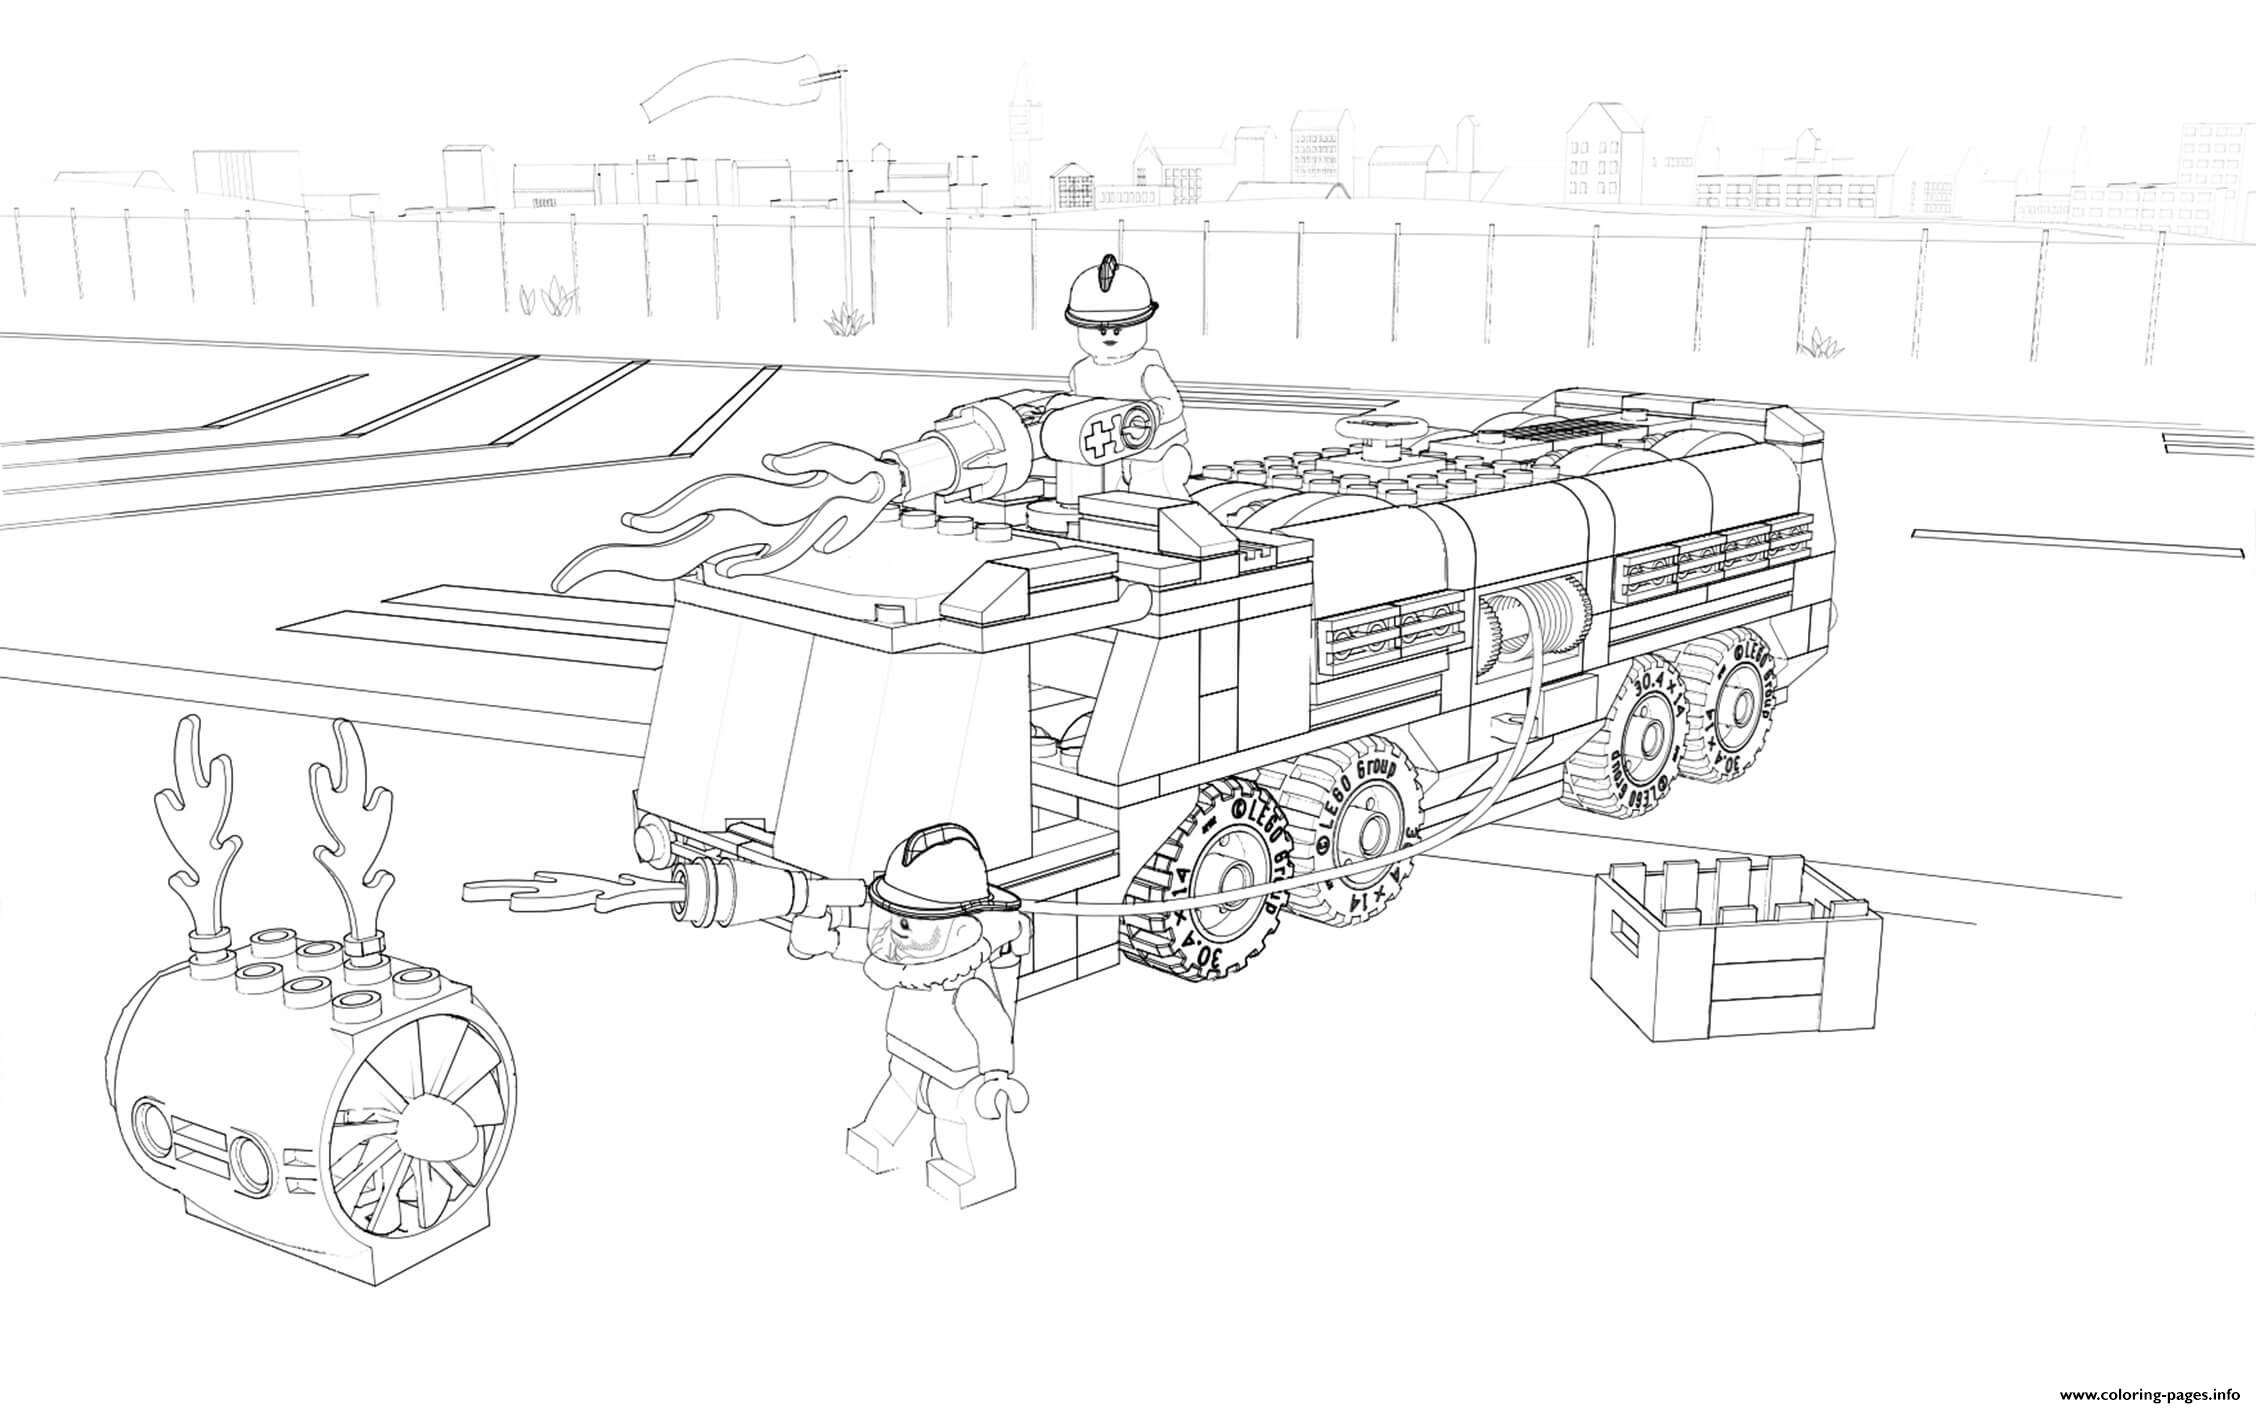 Lego City Firefighter Fire Truck coloring pages